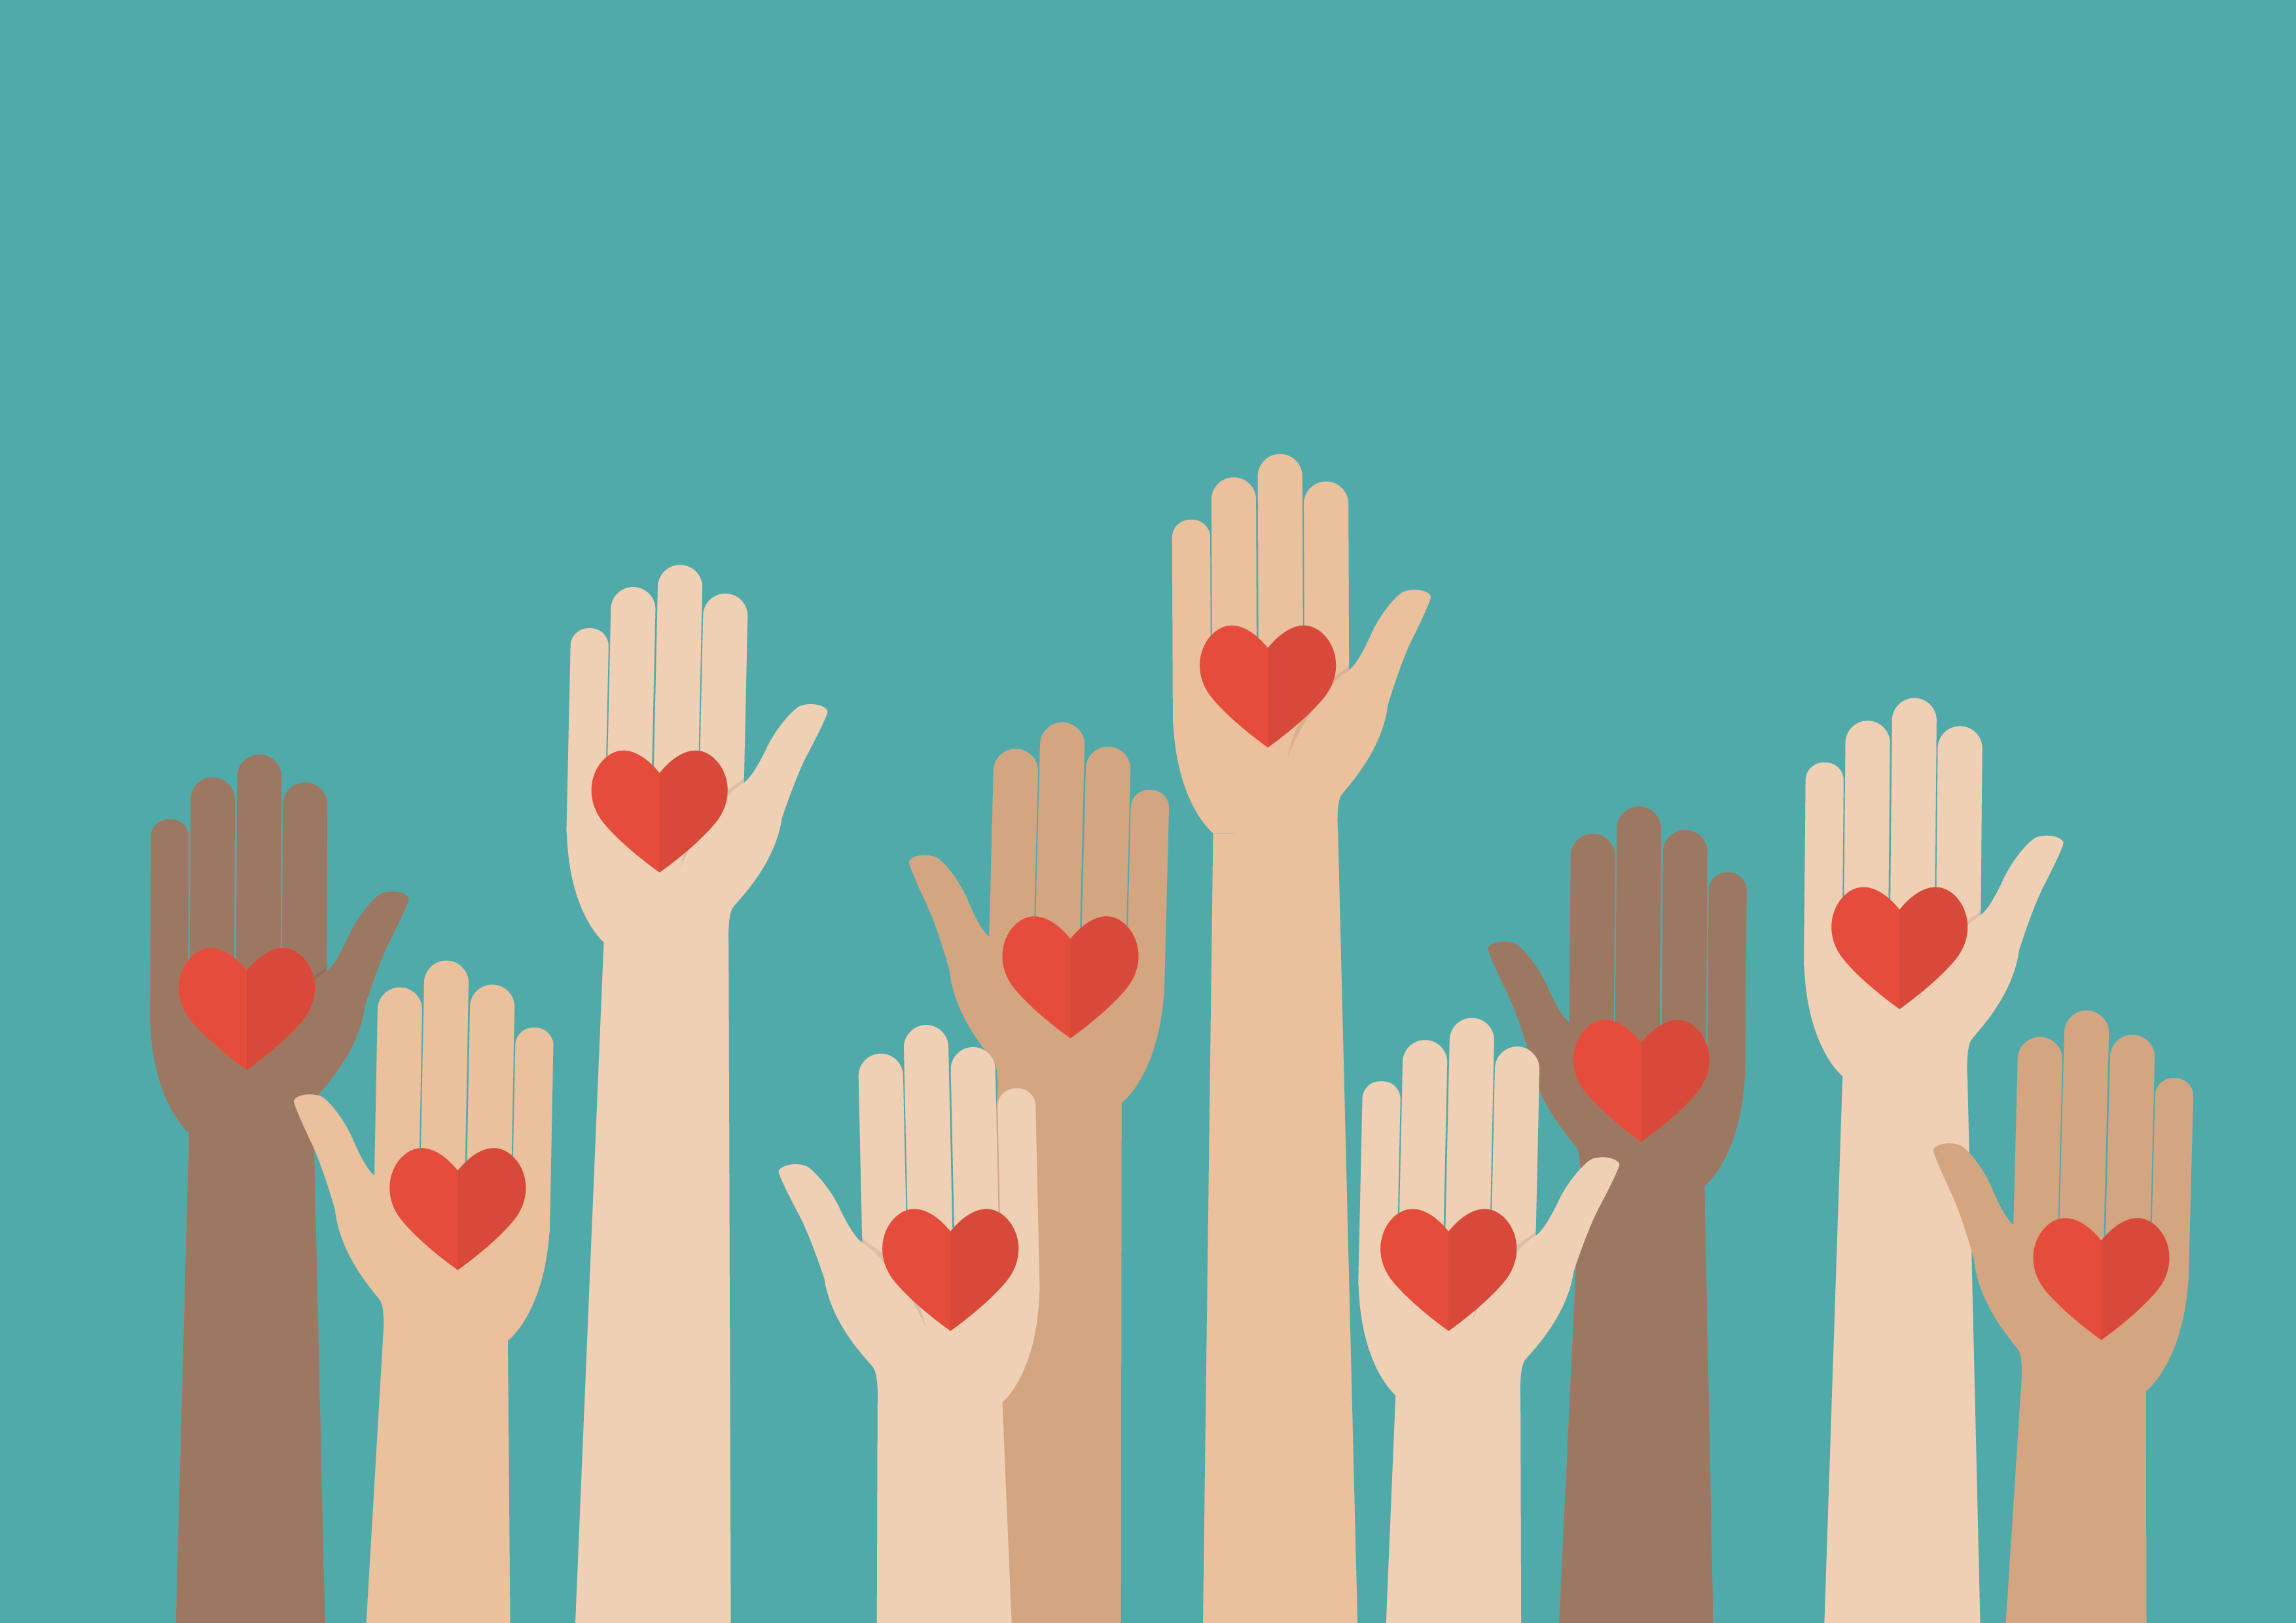 Data-Driven Nonprofits Using Tech to Maximize Outreach and Amplify Impact